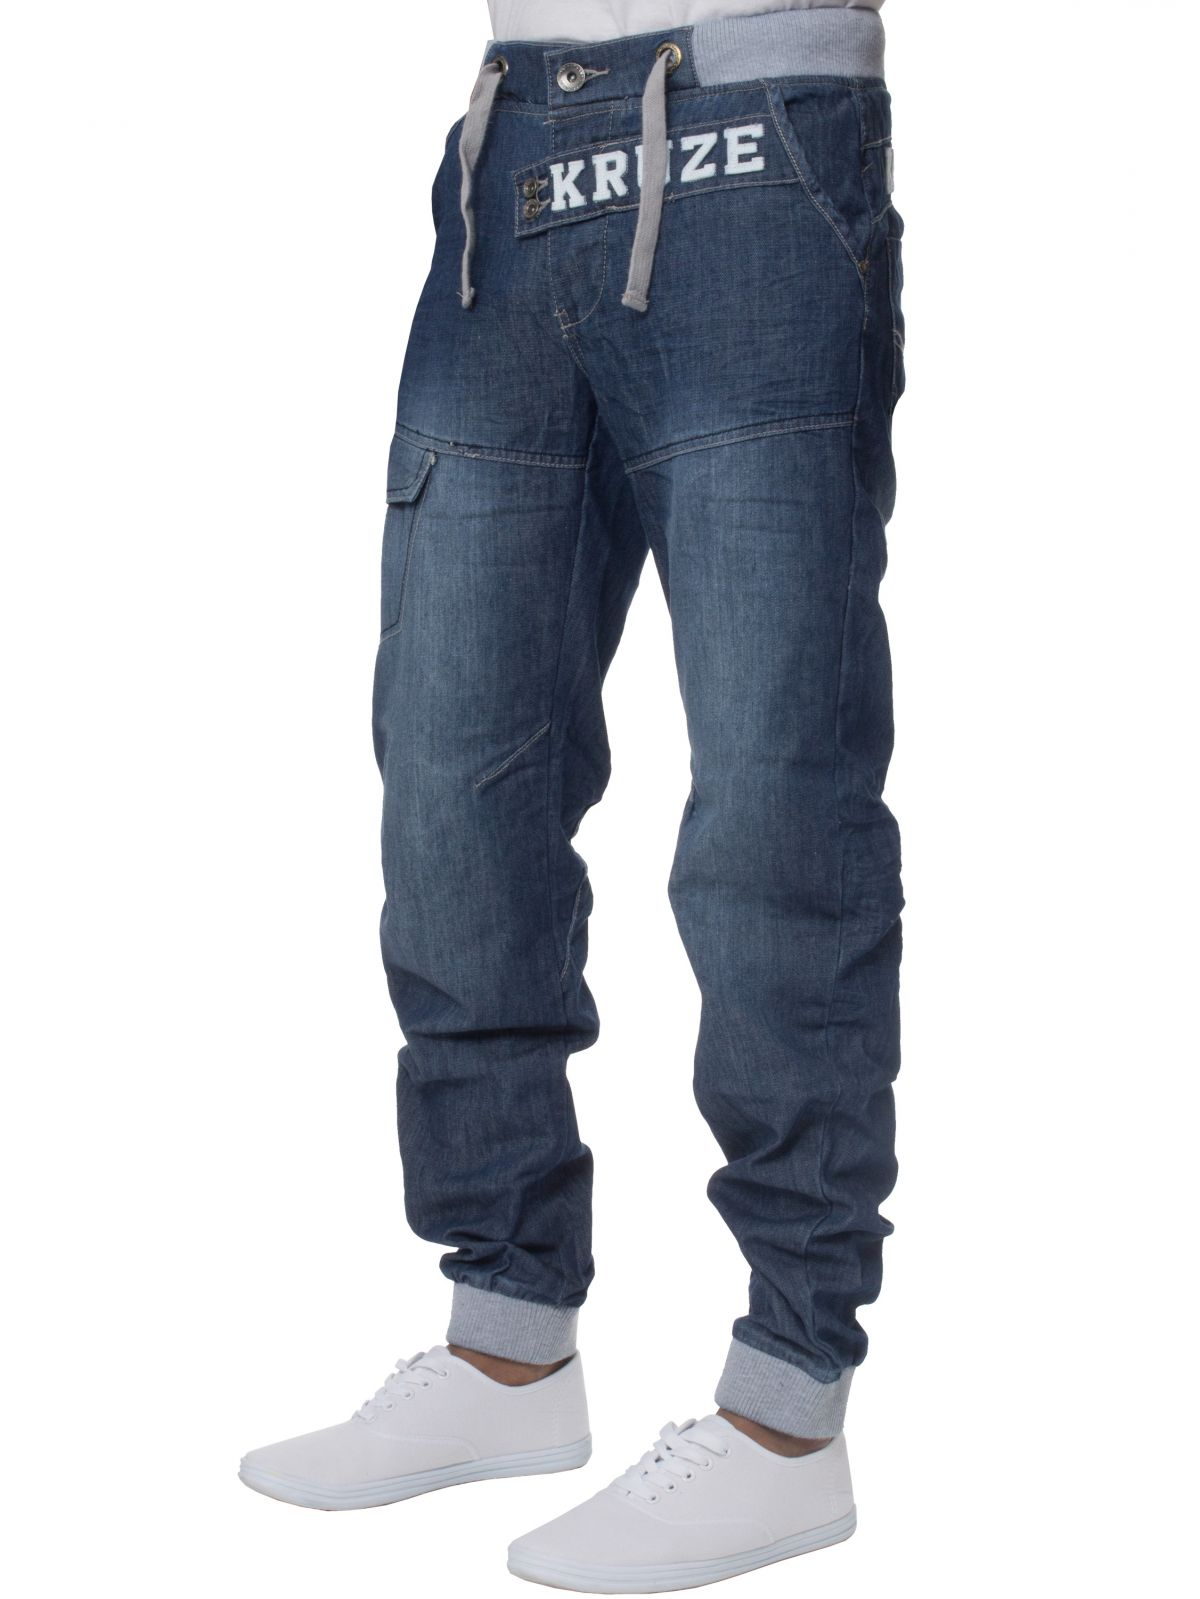 KRUZE Mens Designer Casual Mid Stonewash Branded Denim Cuffed Jeans Pants